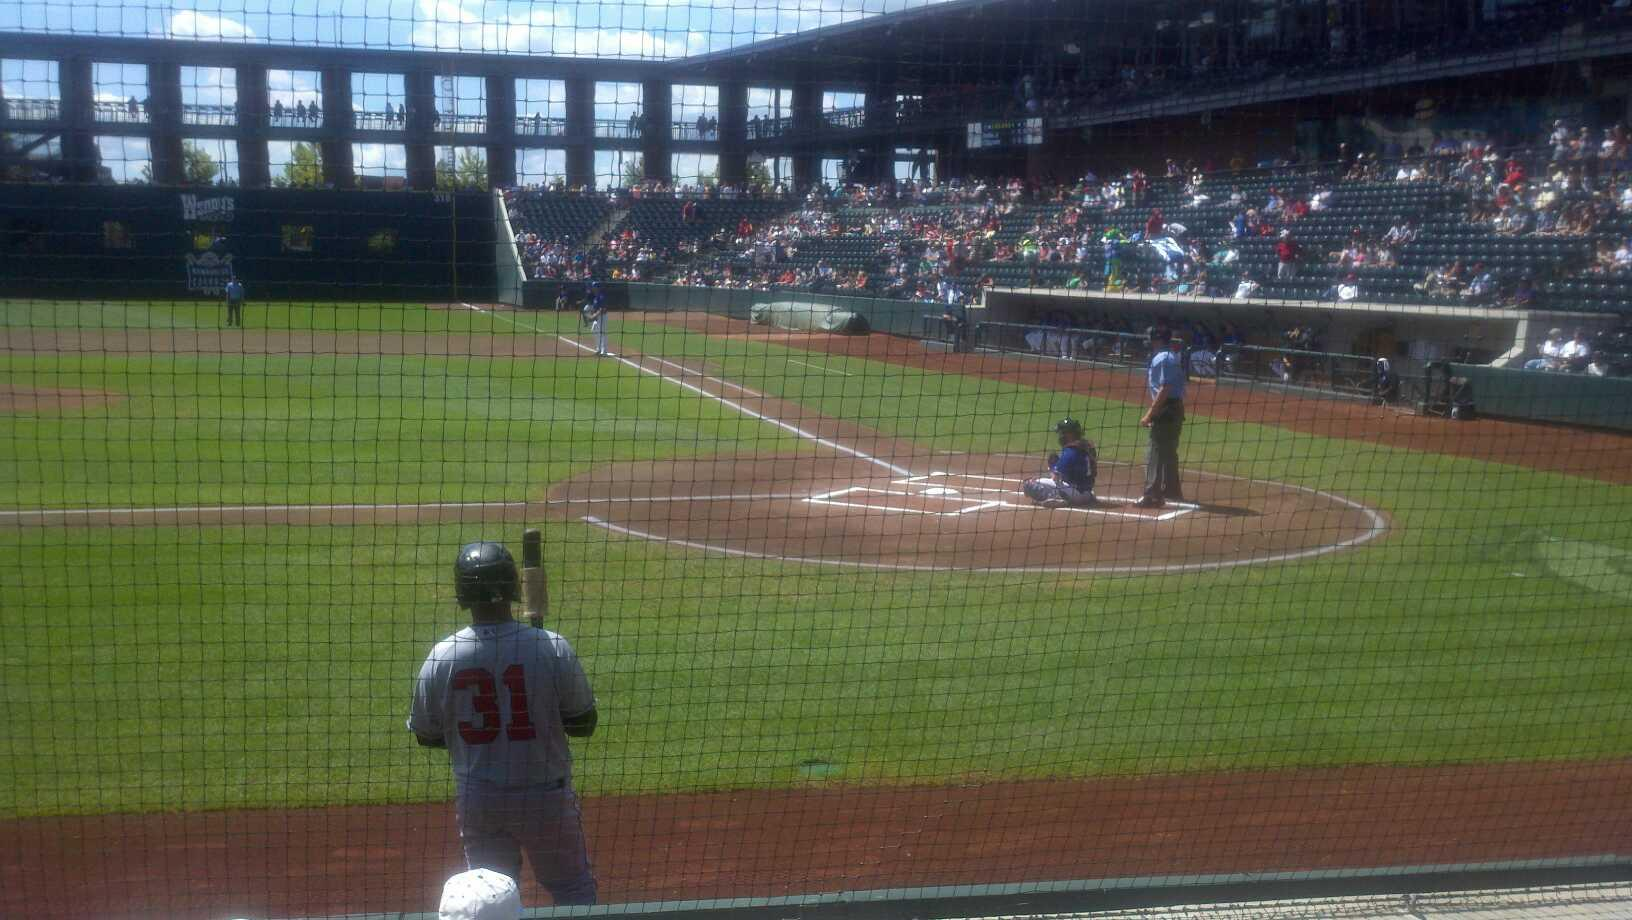 Huntington Park Section 16 Row 6 Seat 1